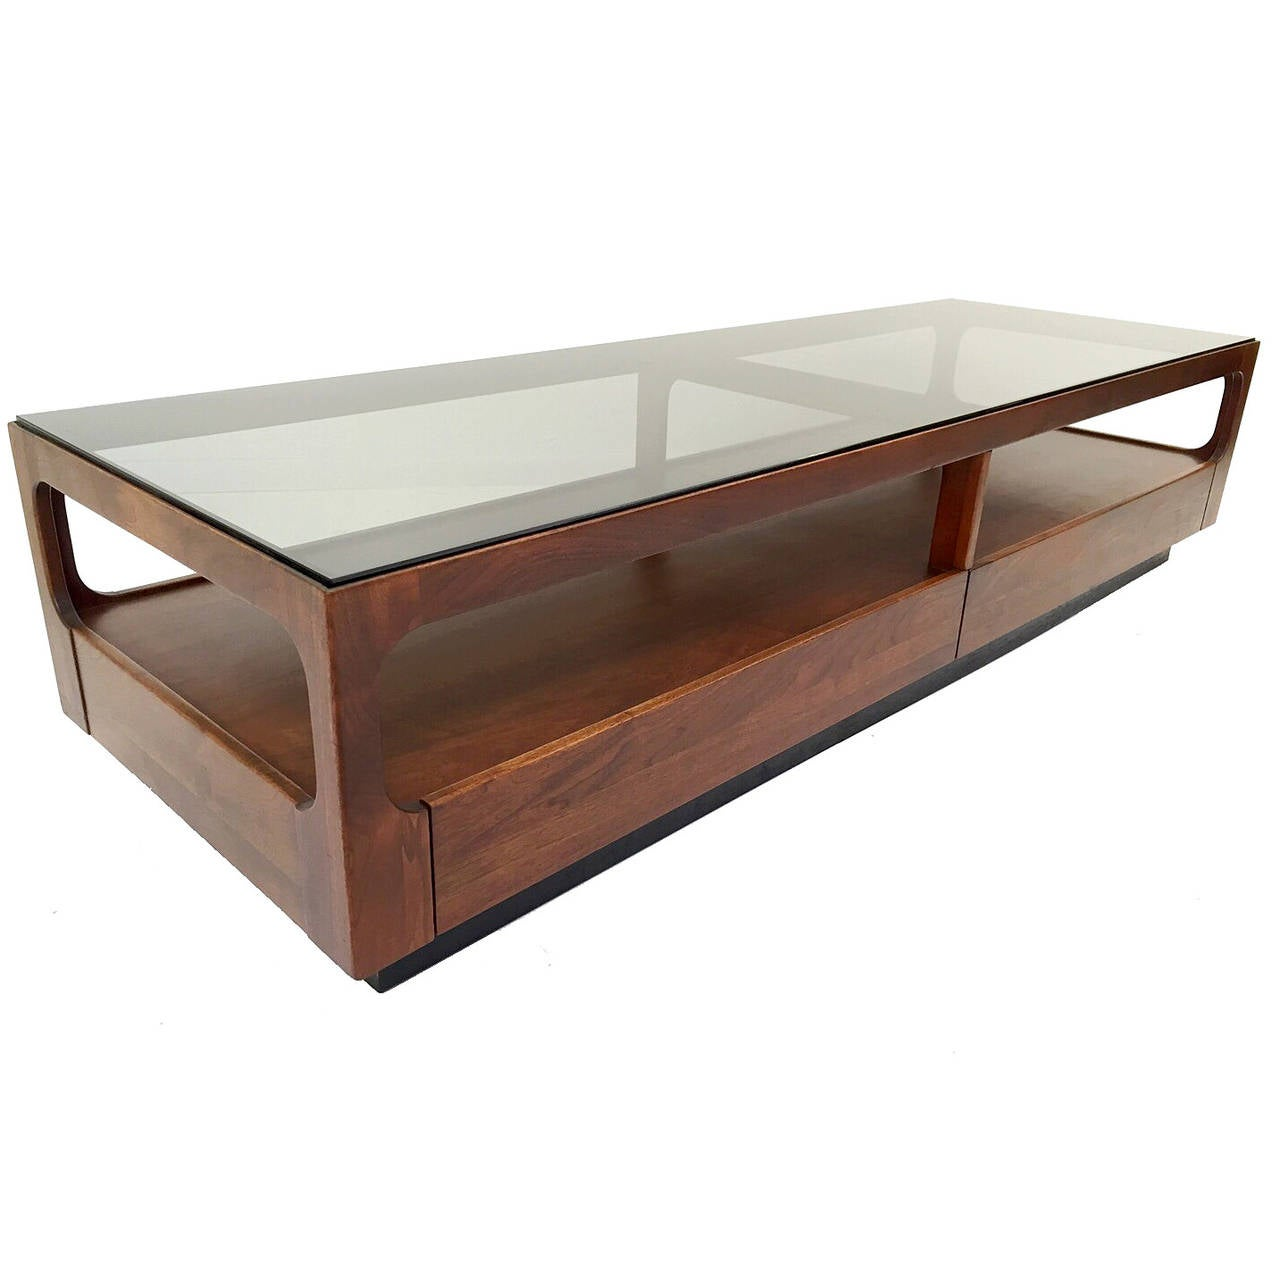 Brown Saltman Walnut And Smoked Glass Coffee Table With Storage By John Keal At 1stdibs